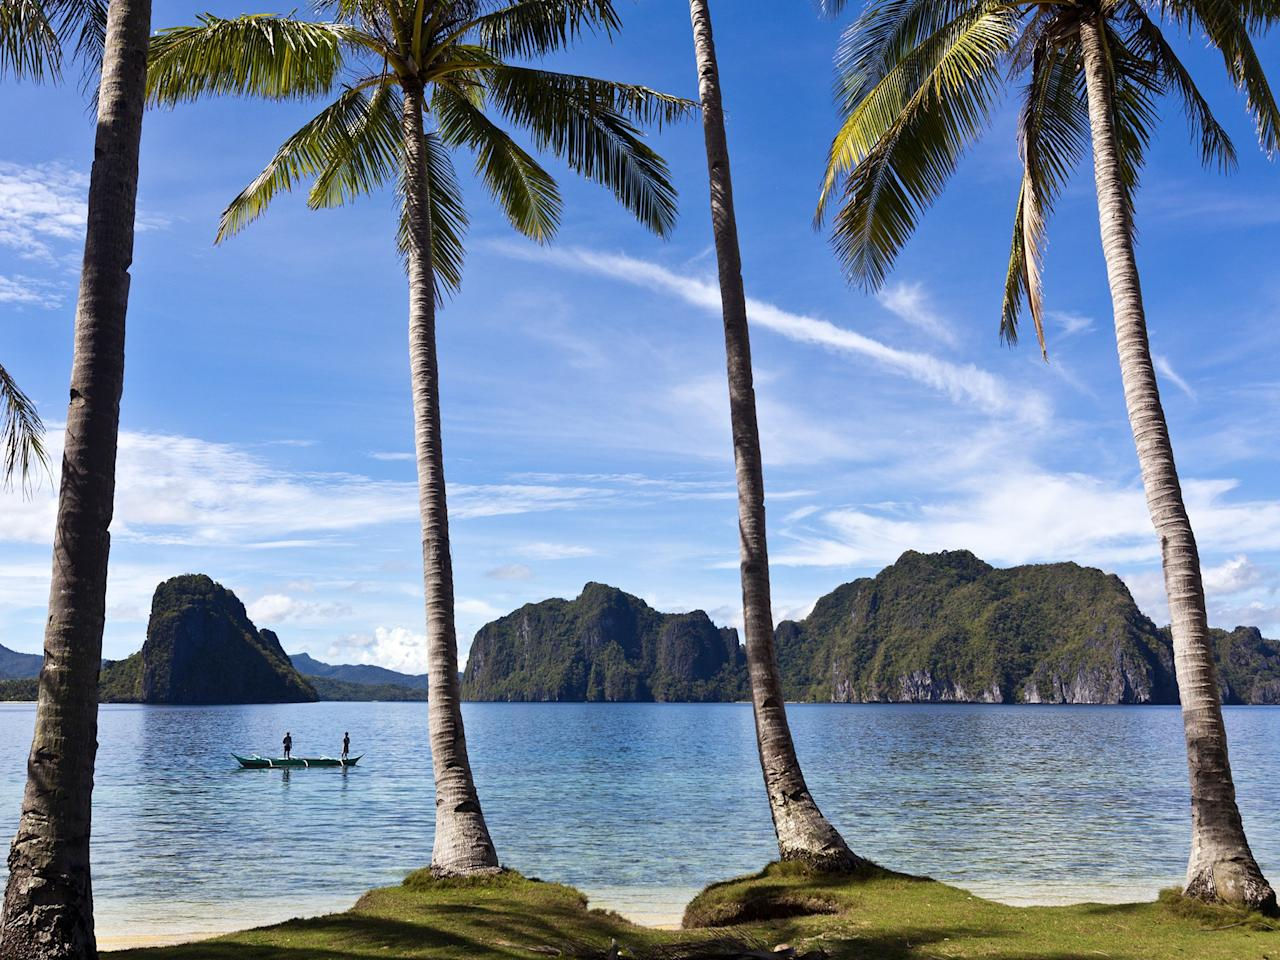 """<p>A regular on our list of the world's best islands, Palawan is home to the otherworldly <a href=""""http://www.cntraveler.com/galleries/2014-10-10/palawan-why-you-should-visit-this-natural-wonder-in-the-philippines?mbid=synd_yahoo_rss"""">Puerto Princesa Subterranean River</a>, a UNESCO World Heritage Site worth the trip alone. Many make El Nido and its blue lagoon their base, though, to explore the Bacuit Archipelago.</p> <p><strong>Pro tip</strong>: Puerto Princesa is one of the longest underground rivers in the world, traveling five miles through a subterranean cave system. Guided boat tours take visitors down a portion of the waterway, where karsts—natural rock formations created by dissolving limestone—loom in every direction.</p> <p><strong>Getting there</strong>: From Manila, it's an hour-and-15-minute flight to Puerto Princesa, Palawan's main airport. Alternately, ferries travel between Manila and the island several days a week (about 24 hours each way).</p>"""